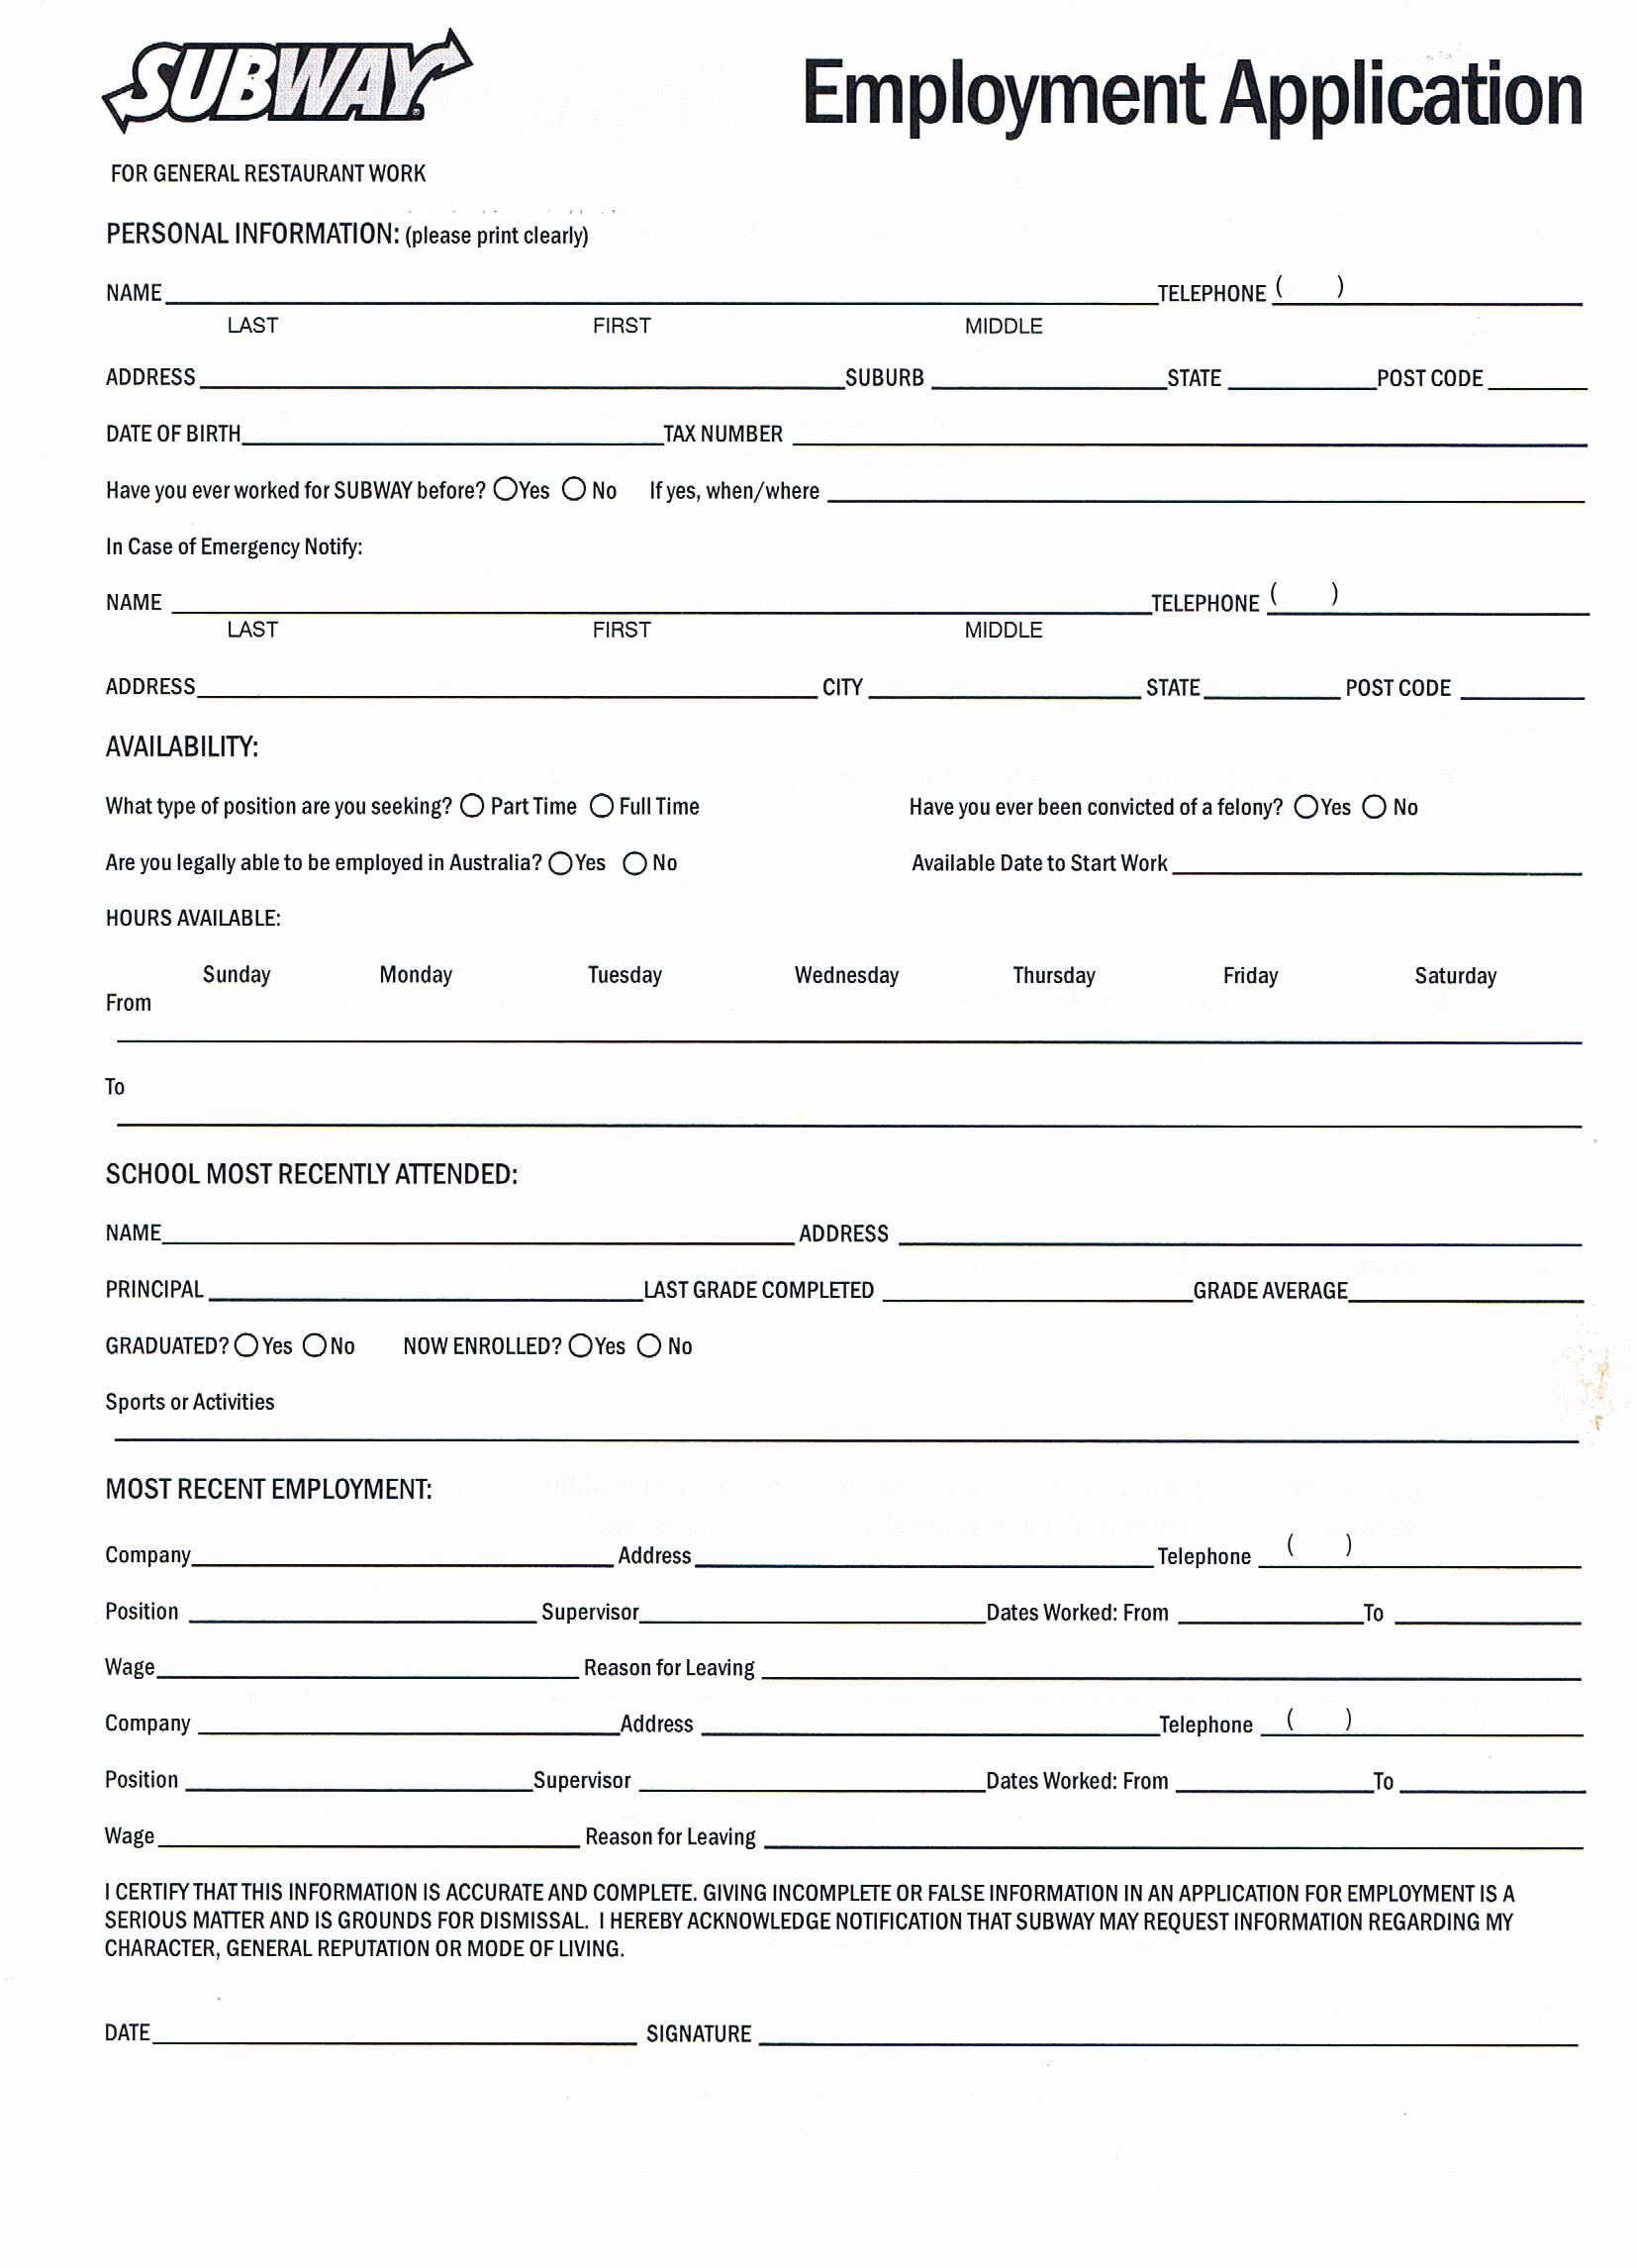 Application for Employment form Pdf Inspirational Printable Employment Application for Subway